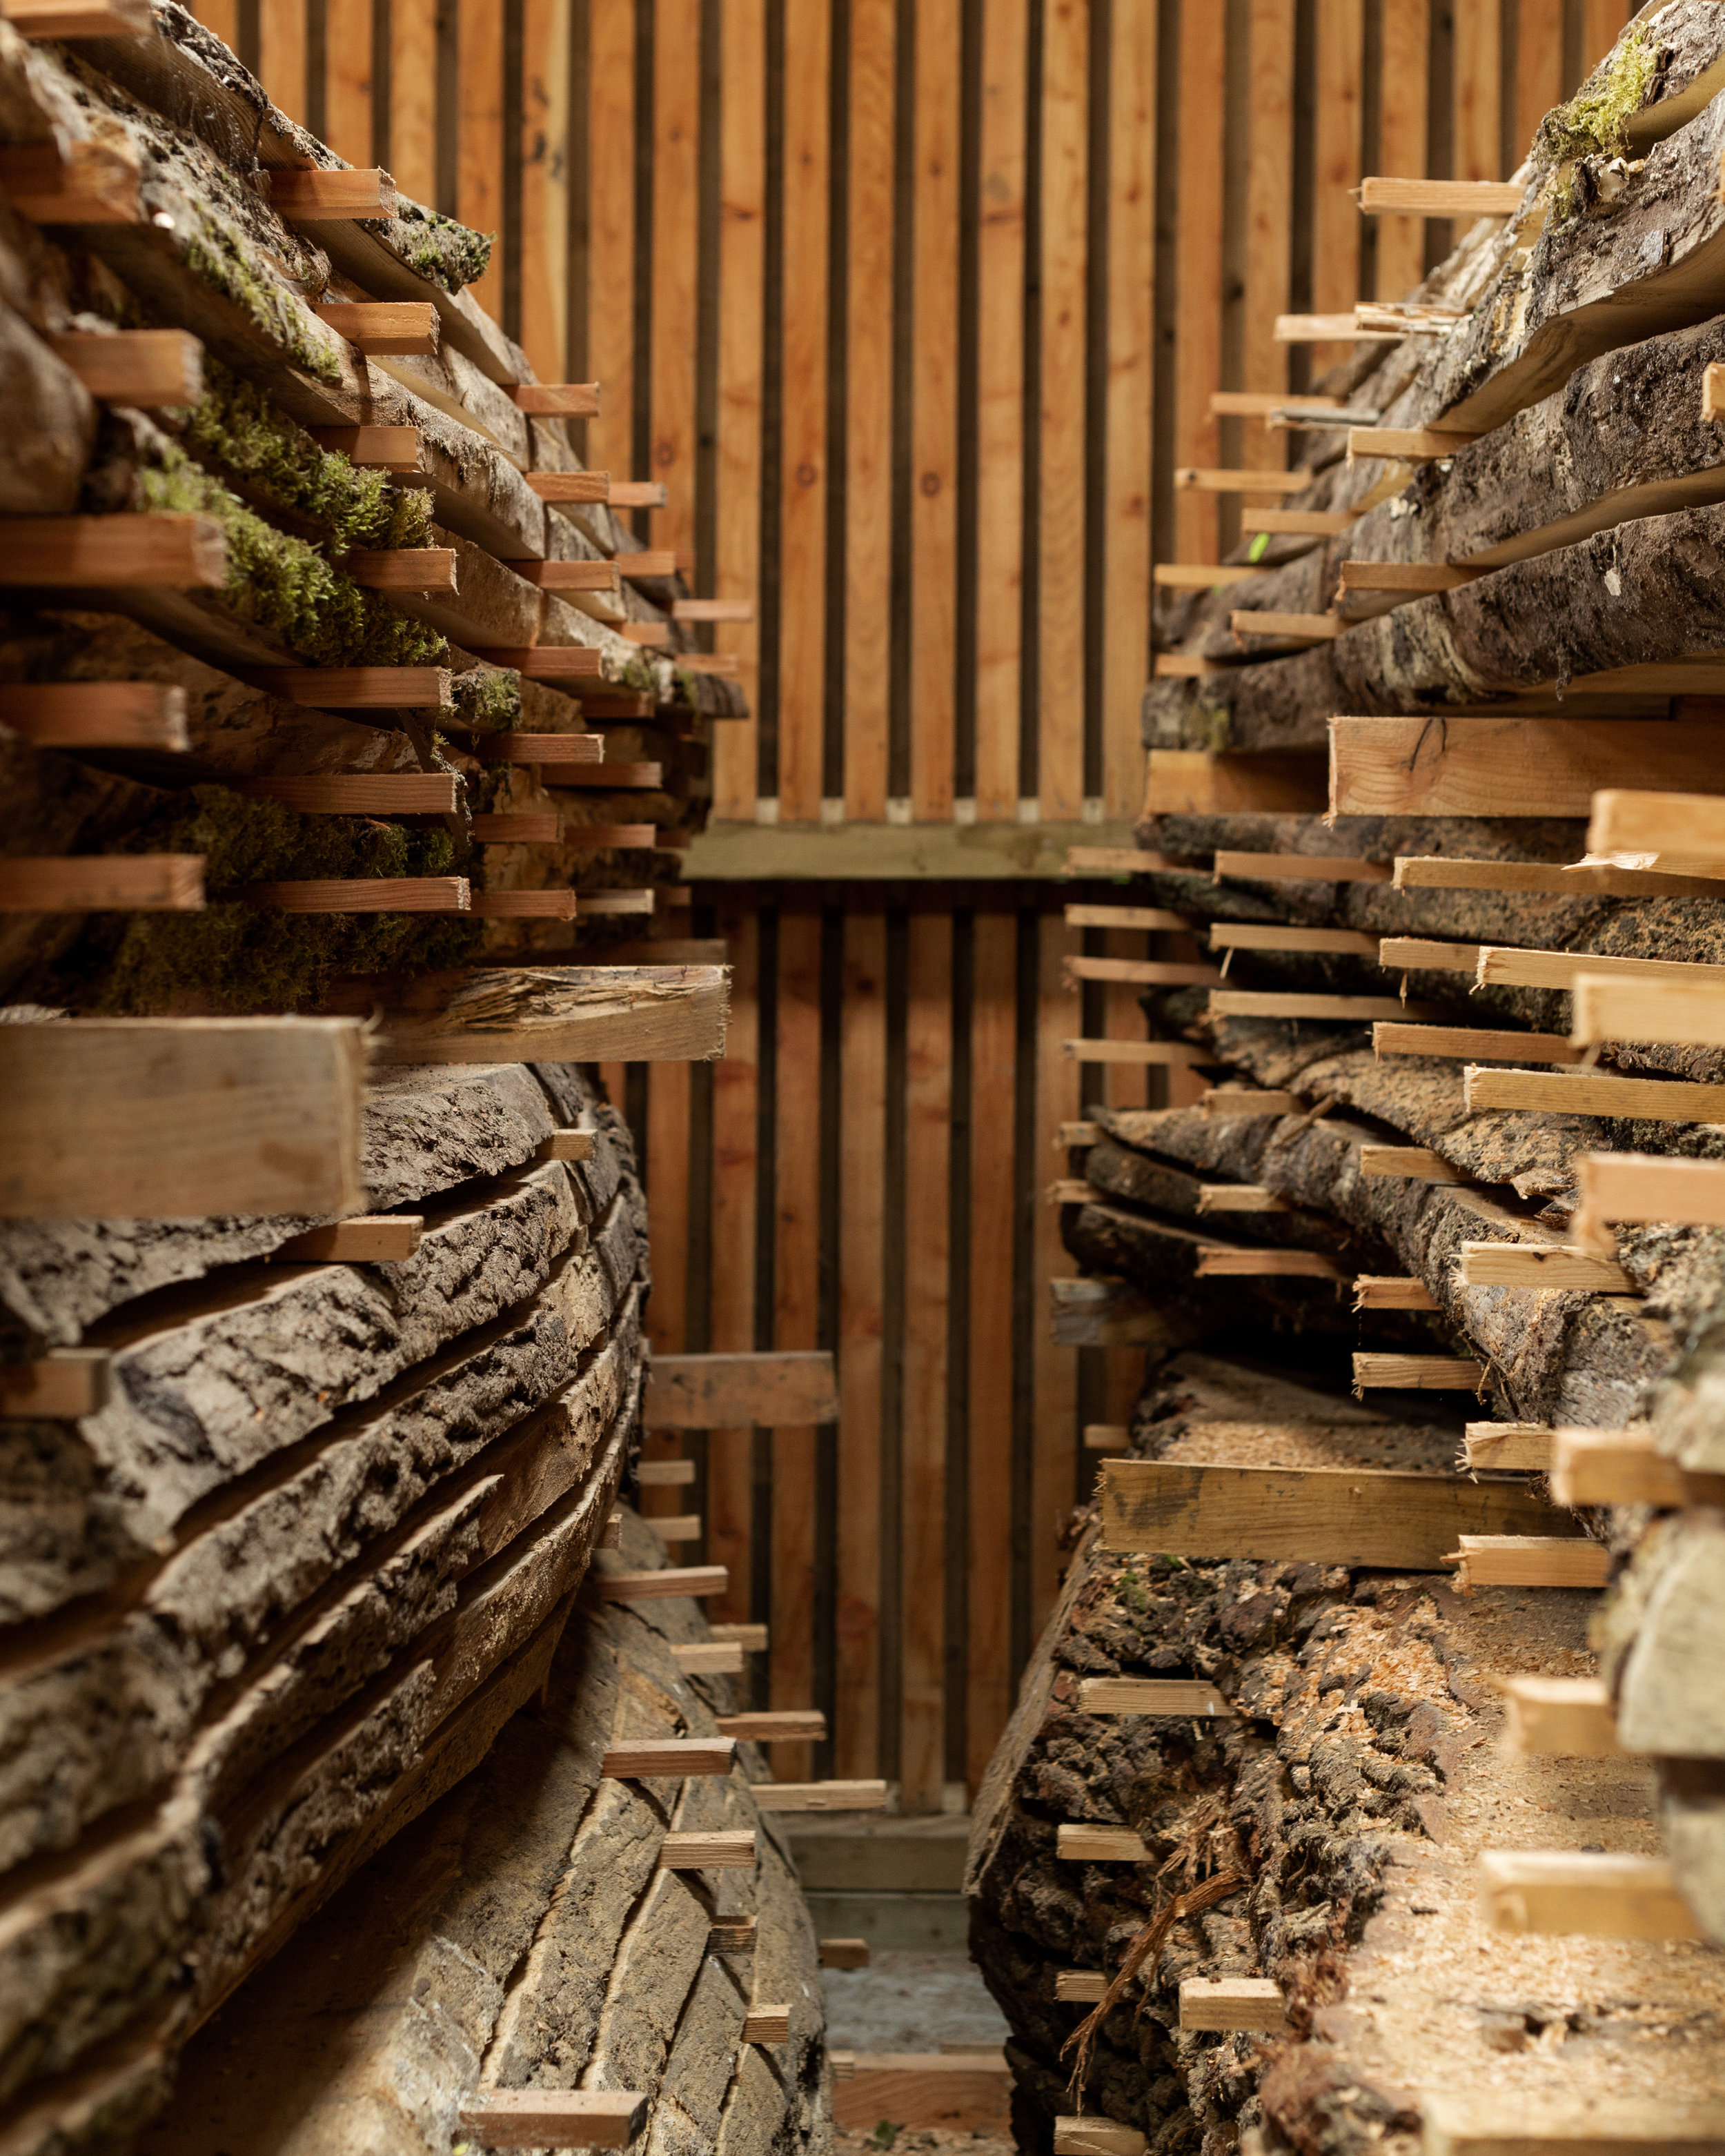 Tall stacks of milled timber, air-drying in the barn timber store at Argal Home Farm.